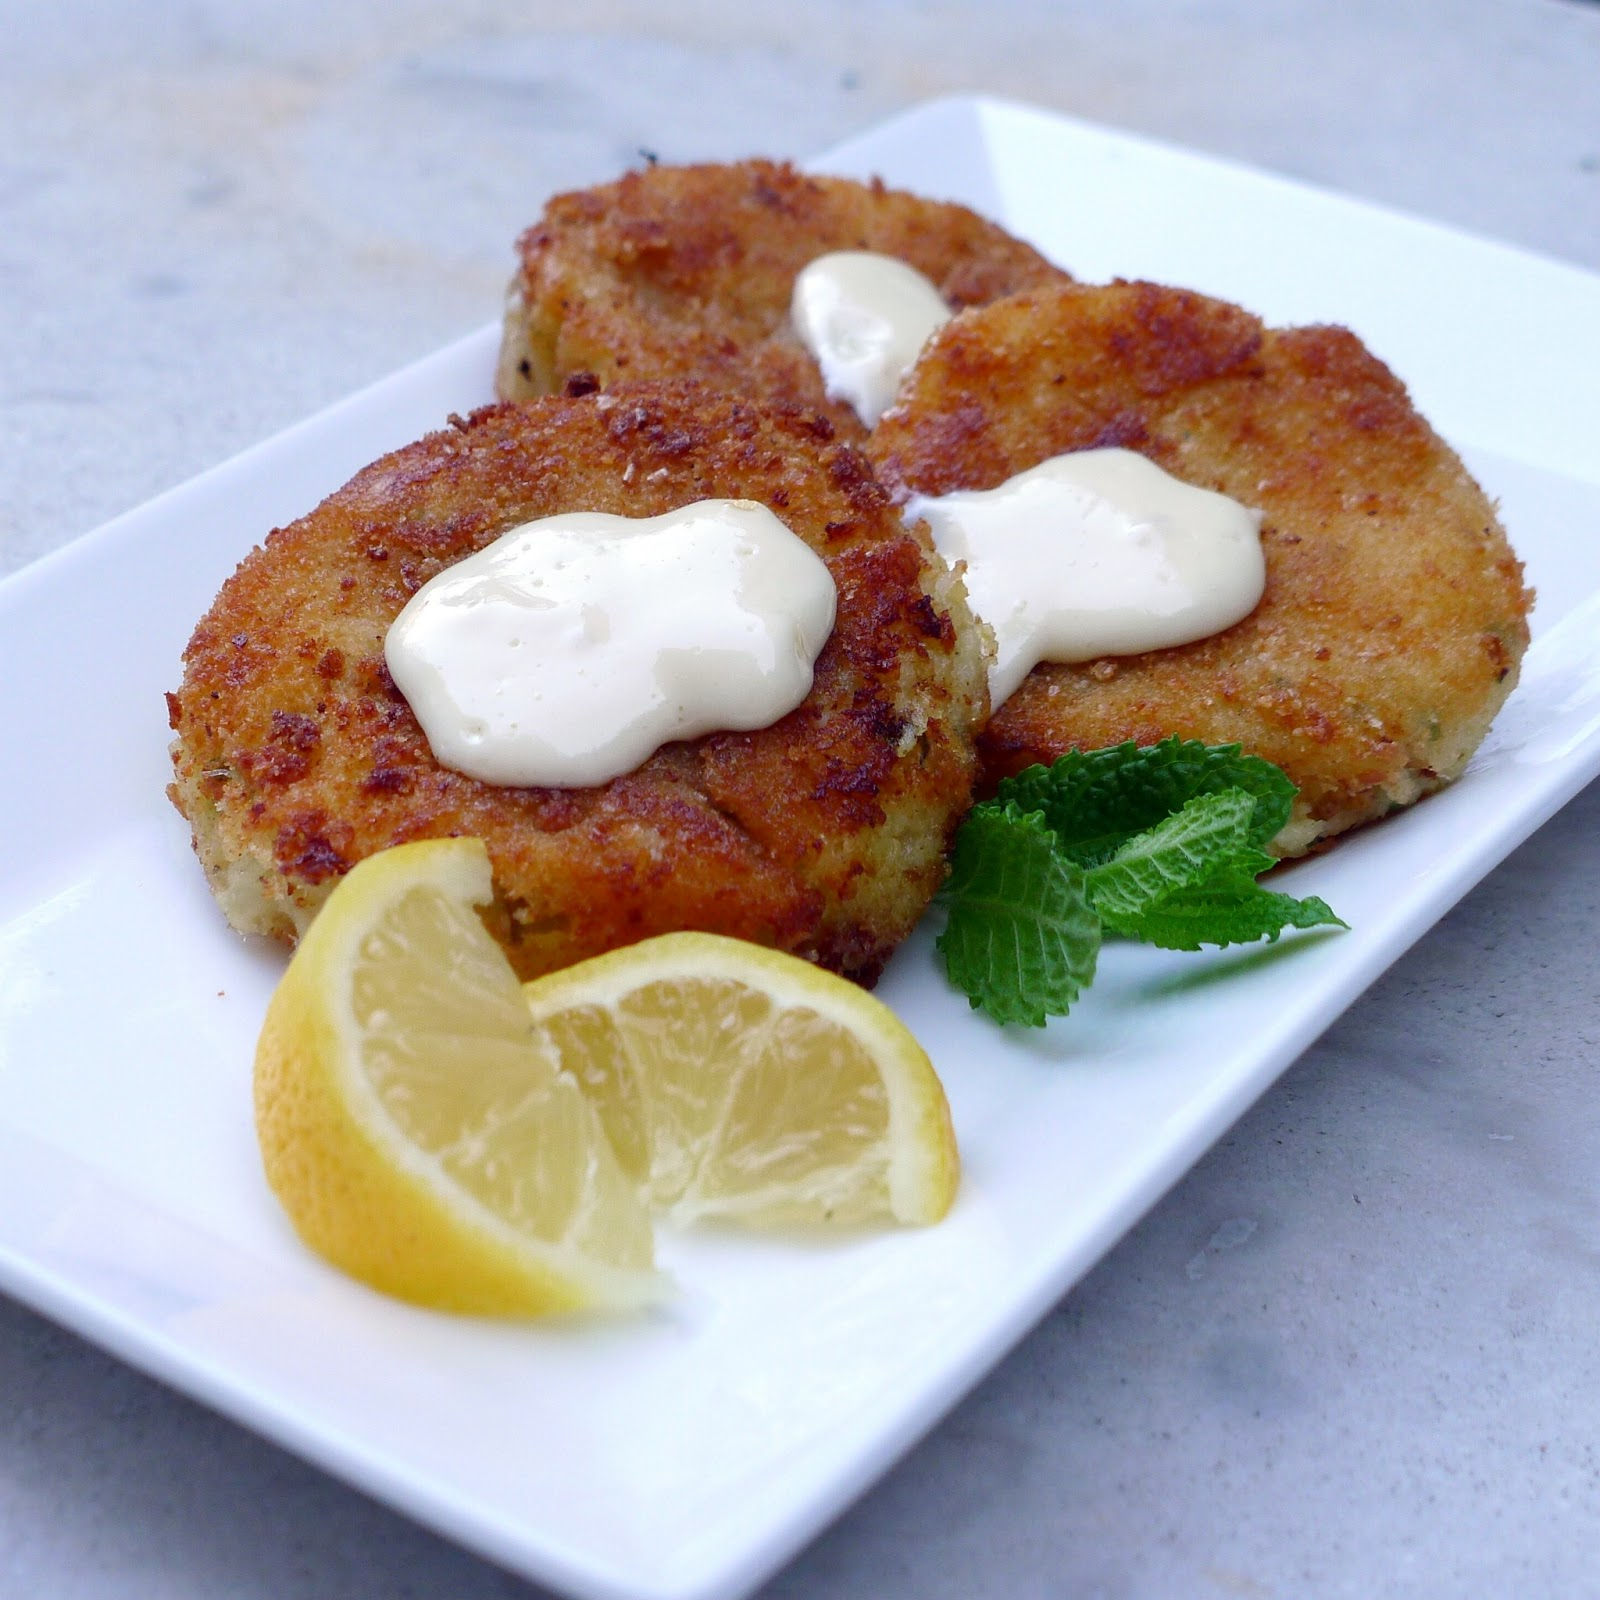 Ilse's Kitchen: Cod Fish Cakes with a Hint of Mint